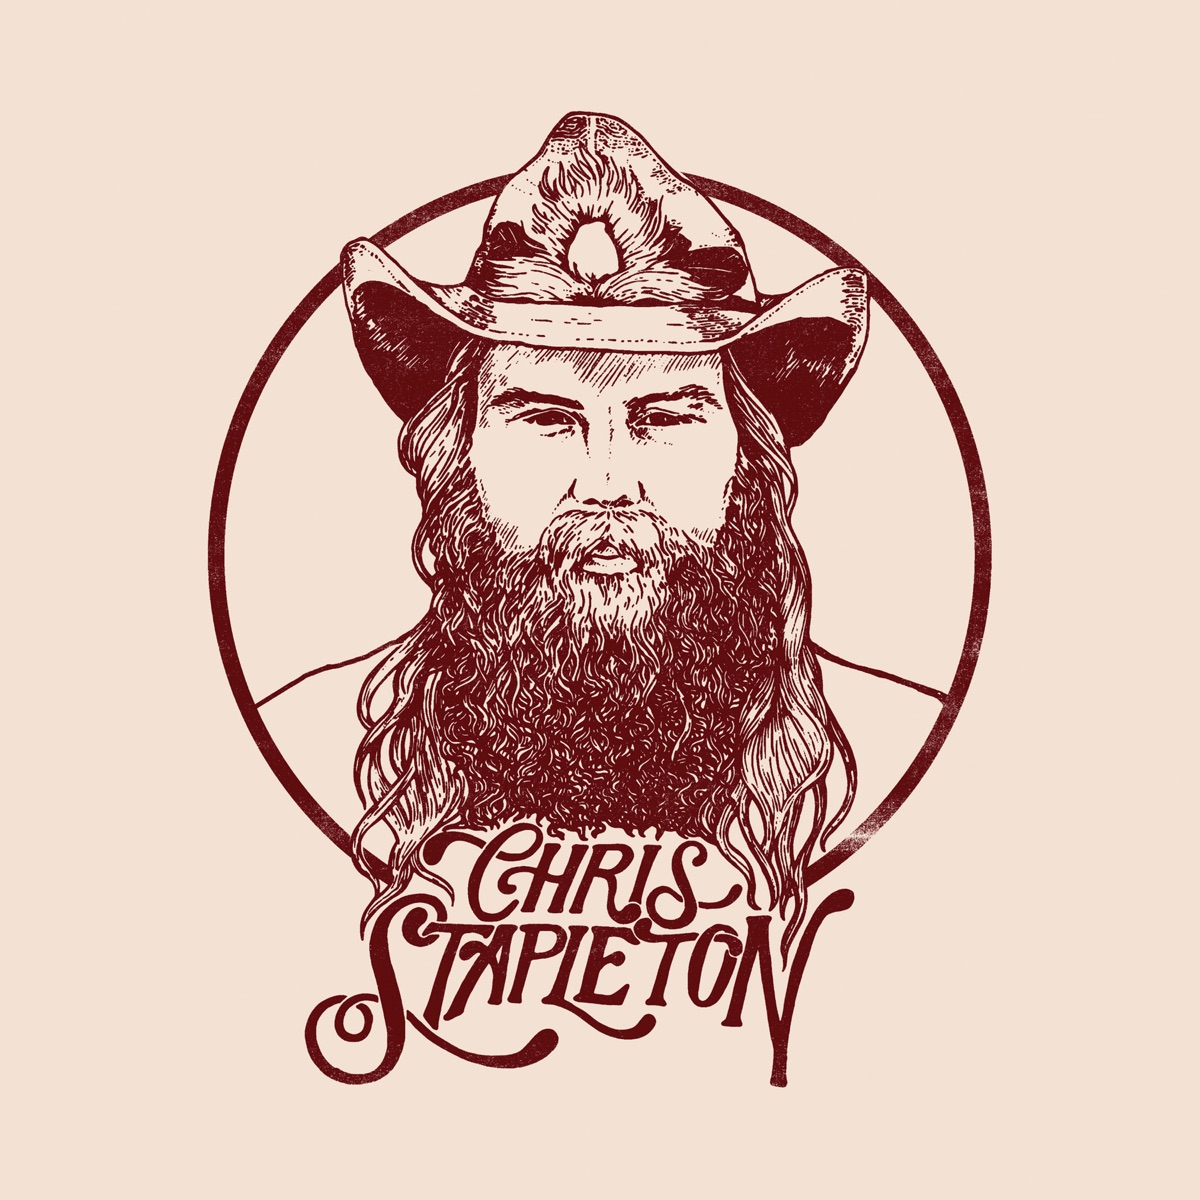 From a Room Vol 1 Chris Stapleton CD cover